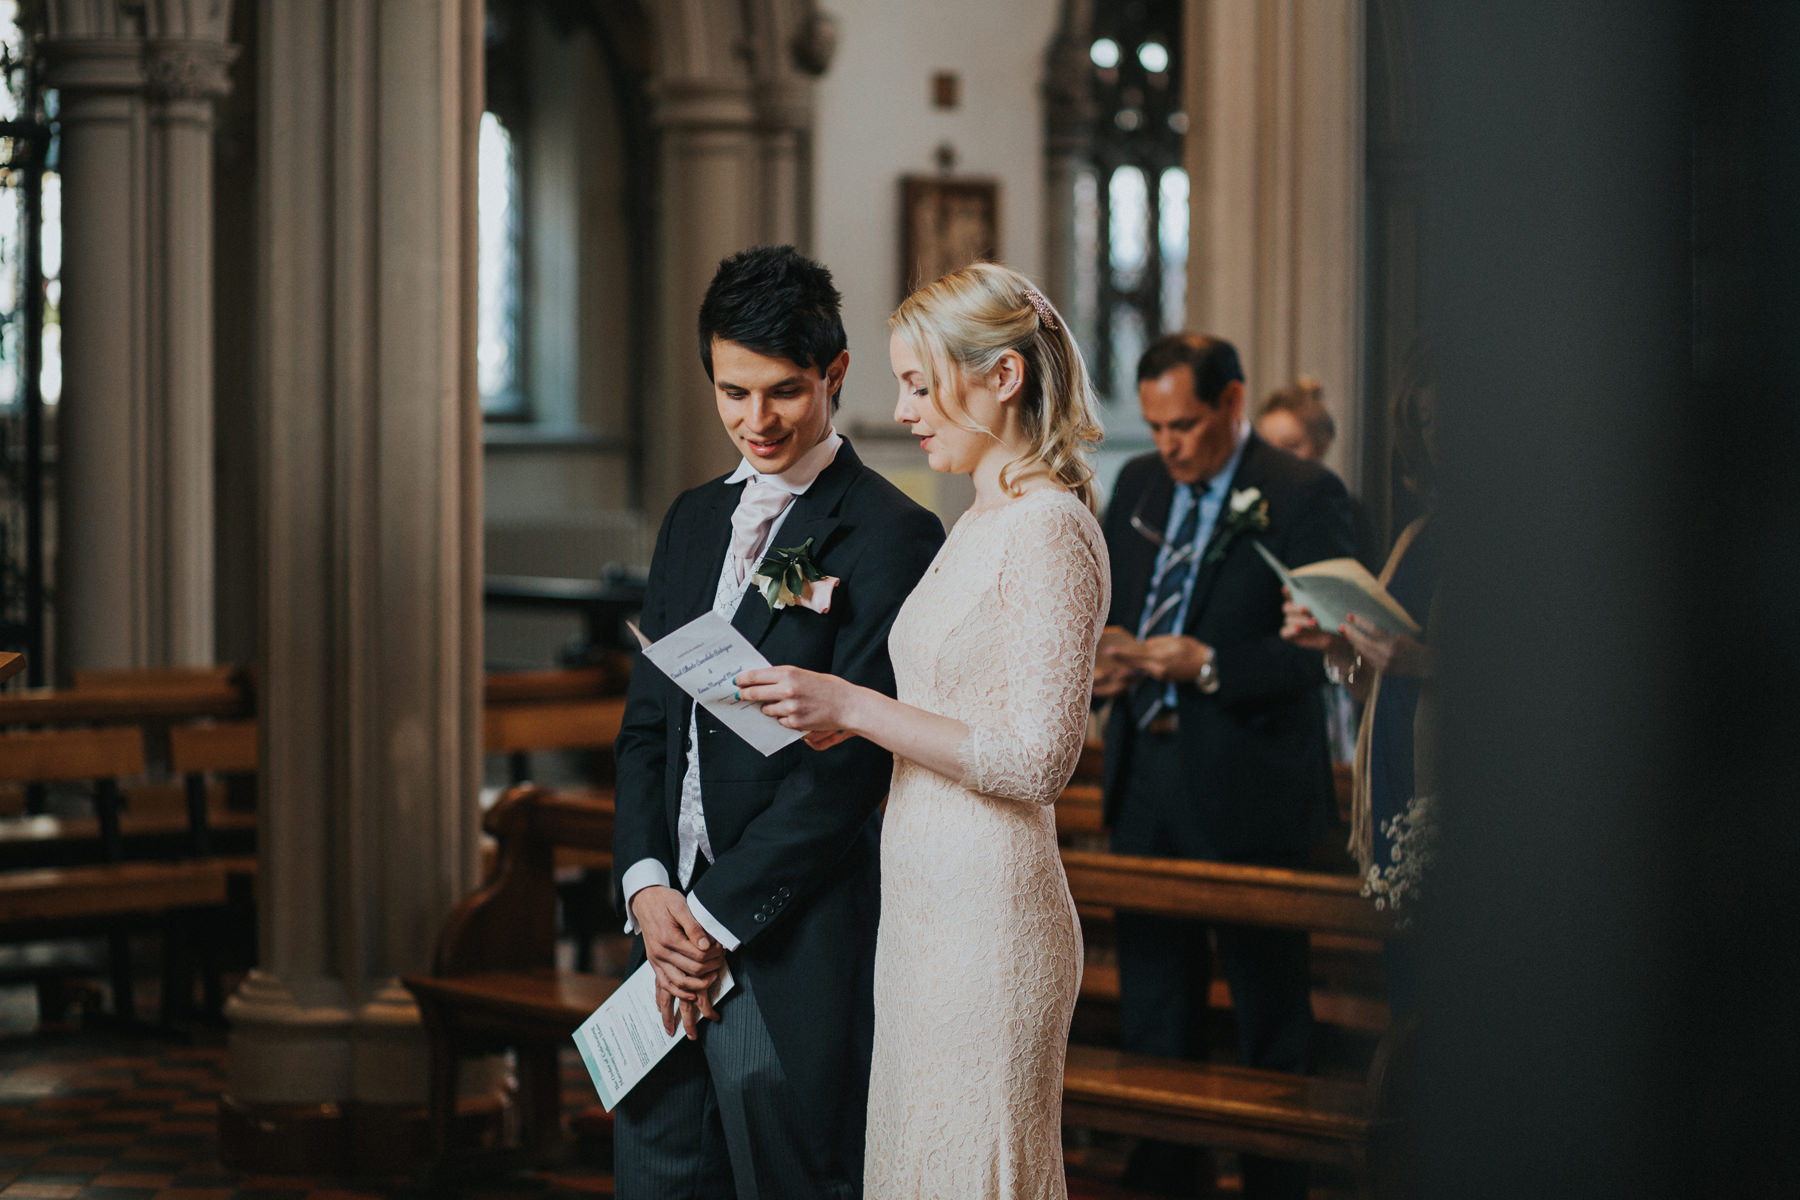 LD-222-catholic-marriage-ceremony-London-bride-groom-photography.jpg